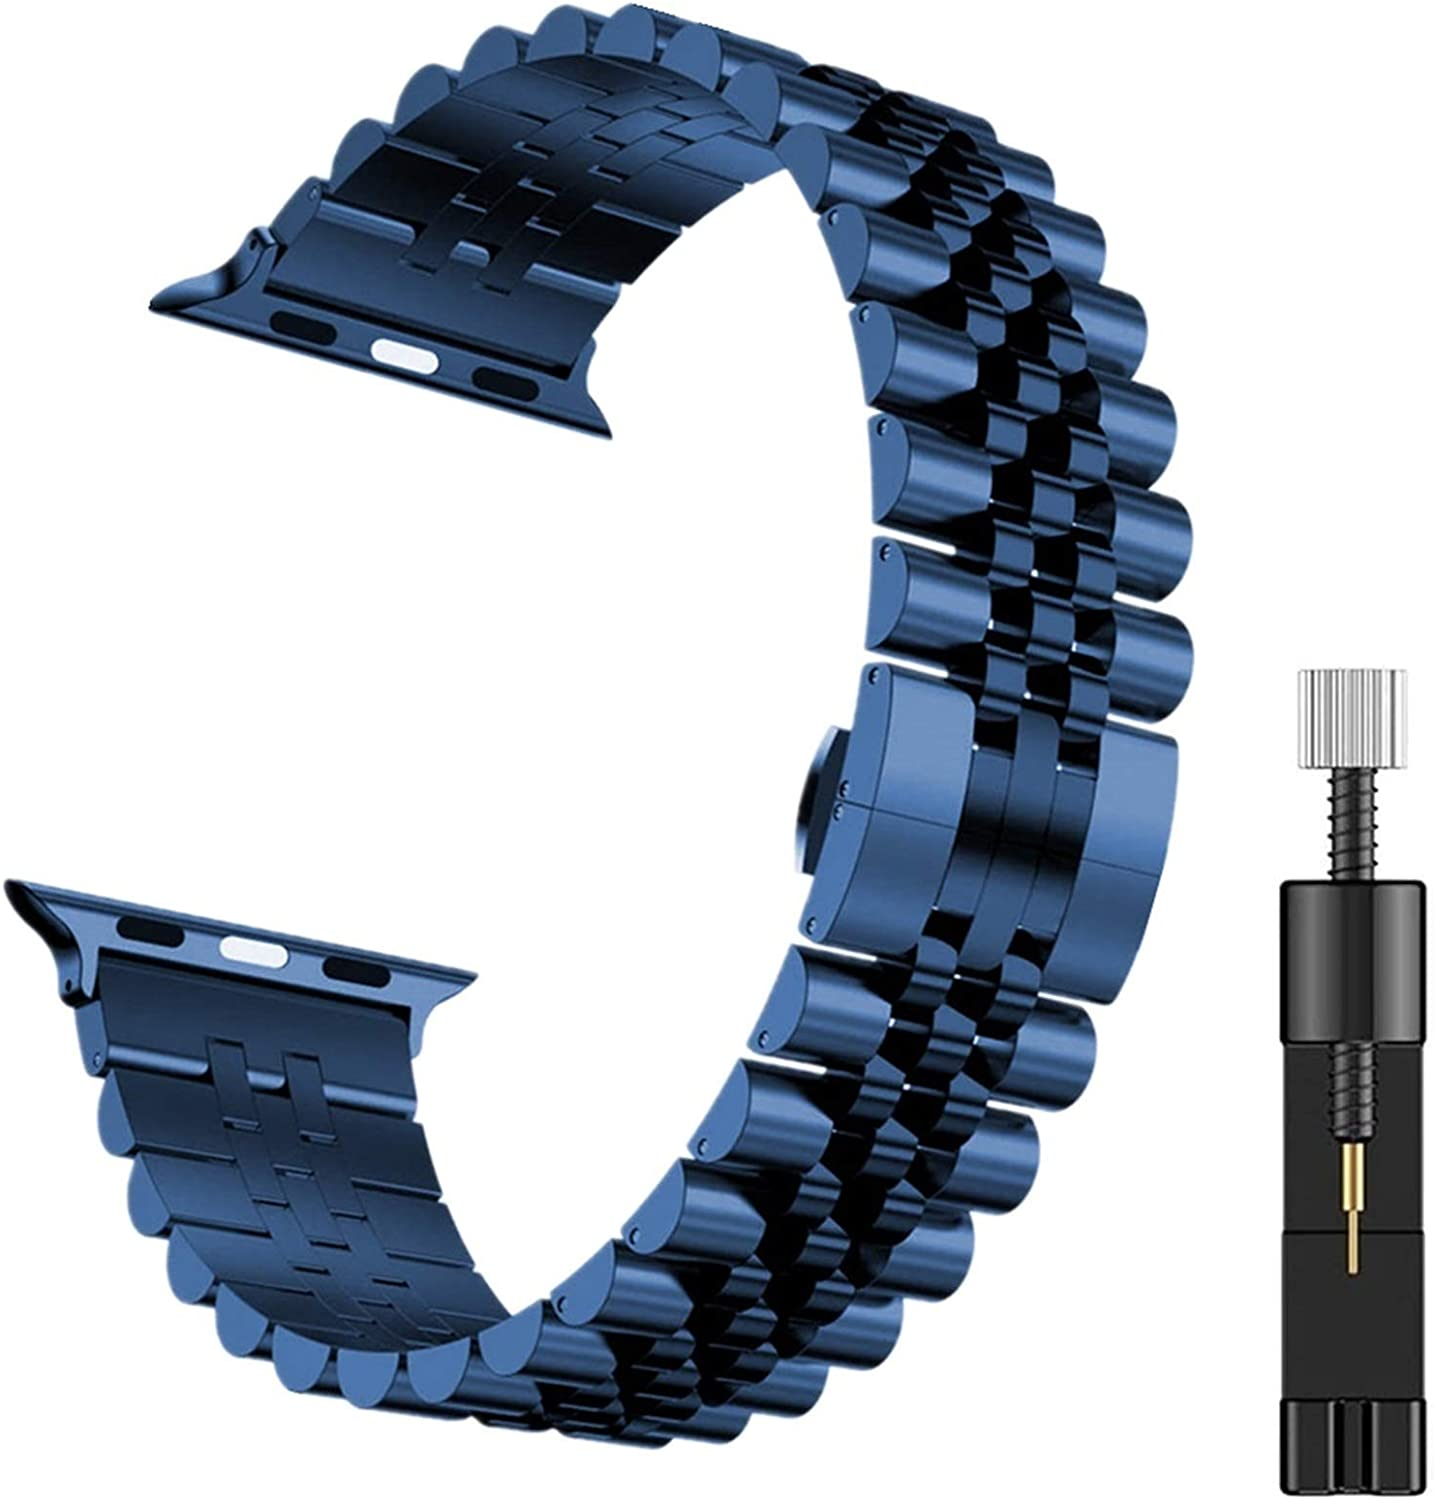 KAAGGF Wristband for IWatch Free shipping anywhere in the nation Max 78% OFF 6 Stainless 38mm 40mm Bracelet Steel